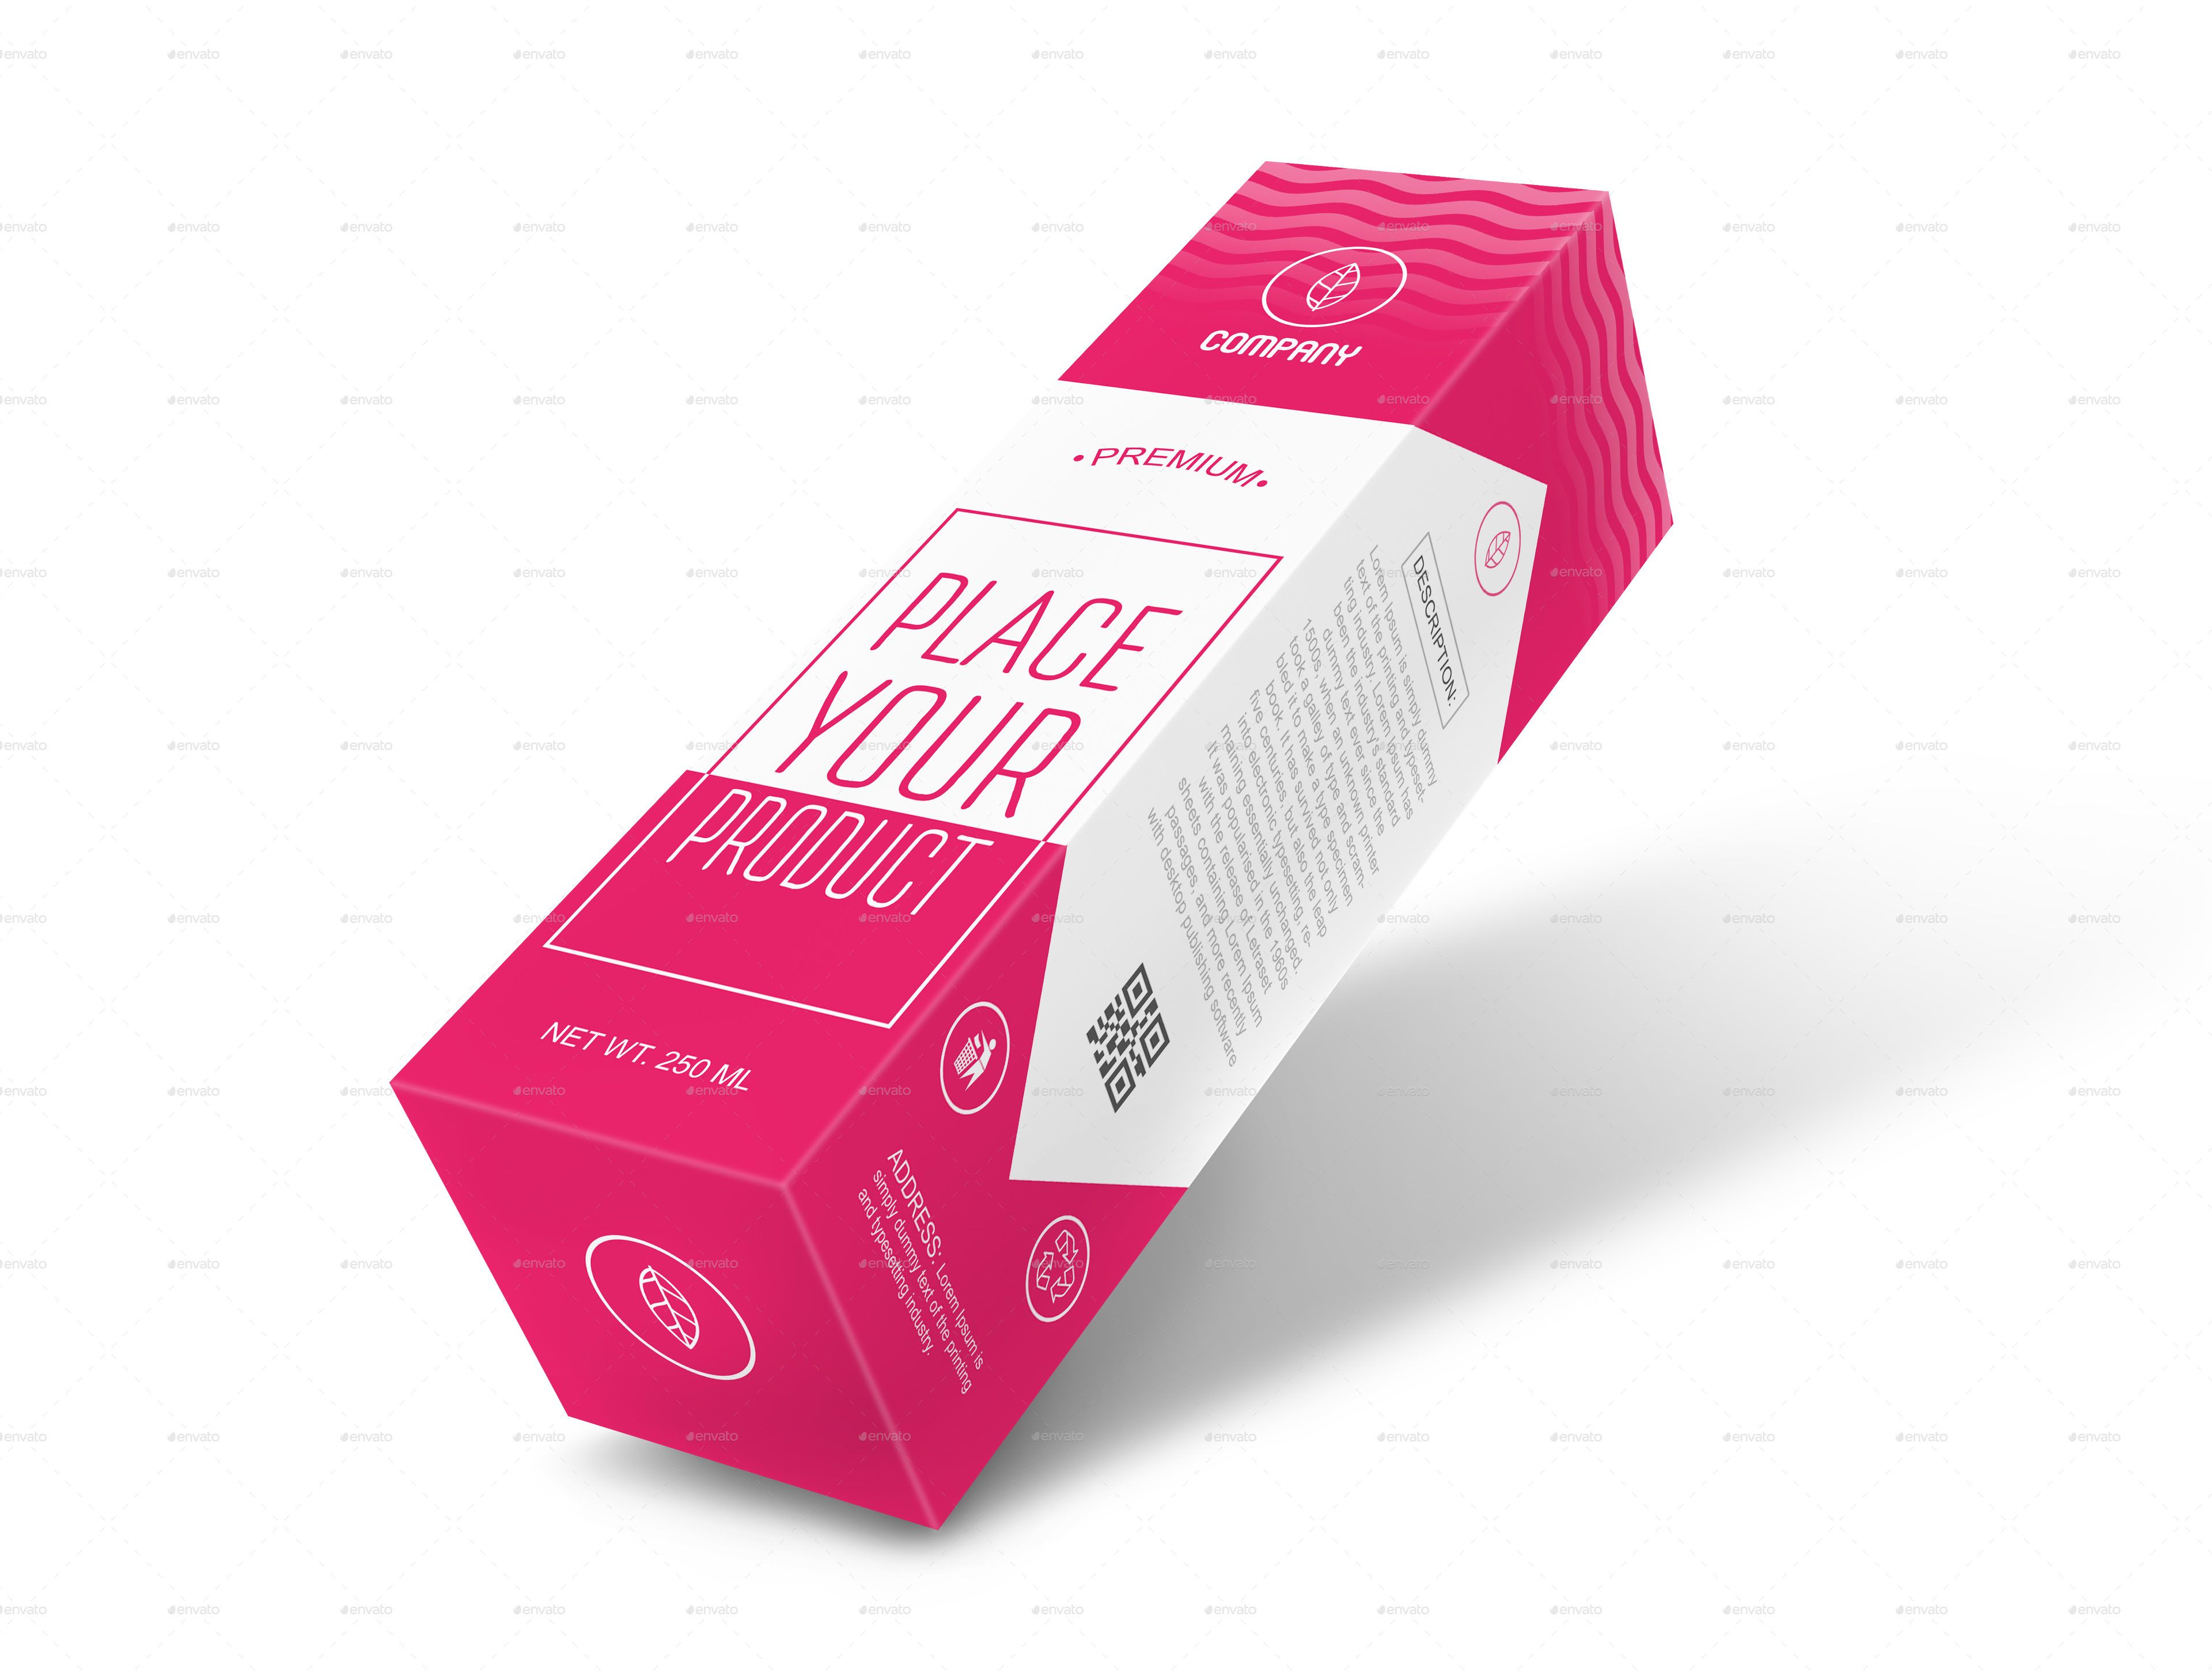 Download 50 Only The Best Free Psd Boxes Mockups For You And Your Ideas Free Psd Templates Box Mockup Psd Template Free Mockup